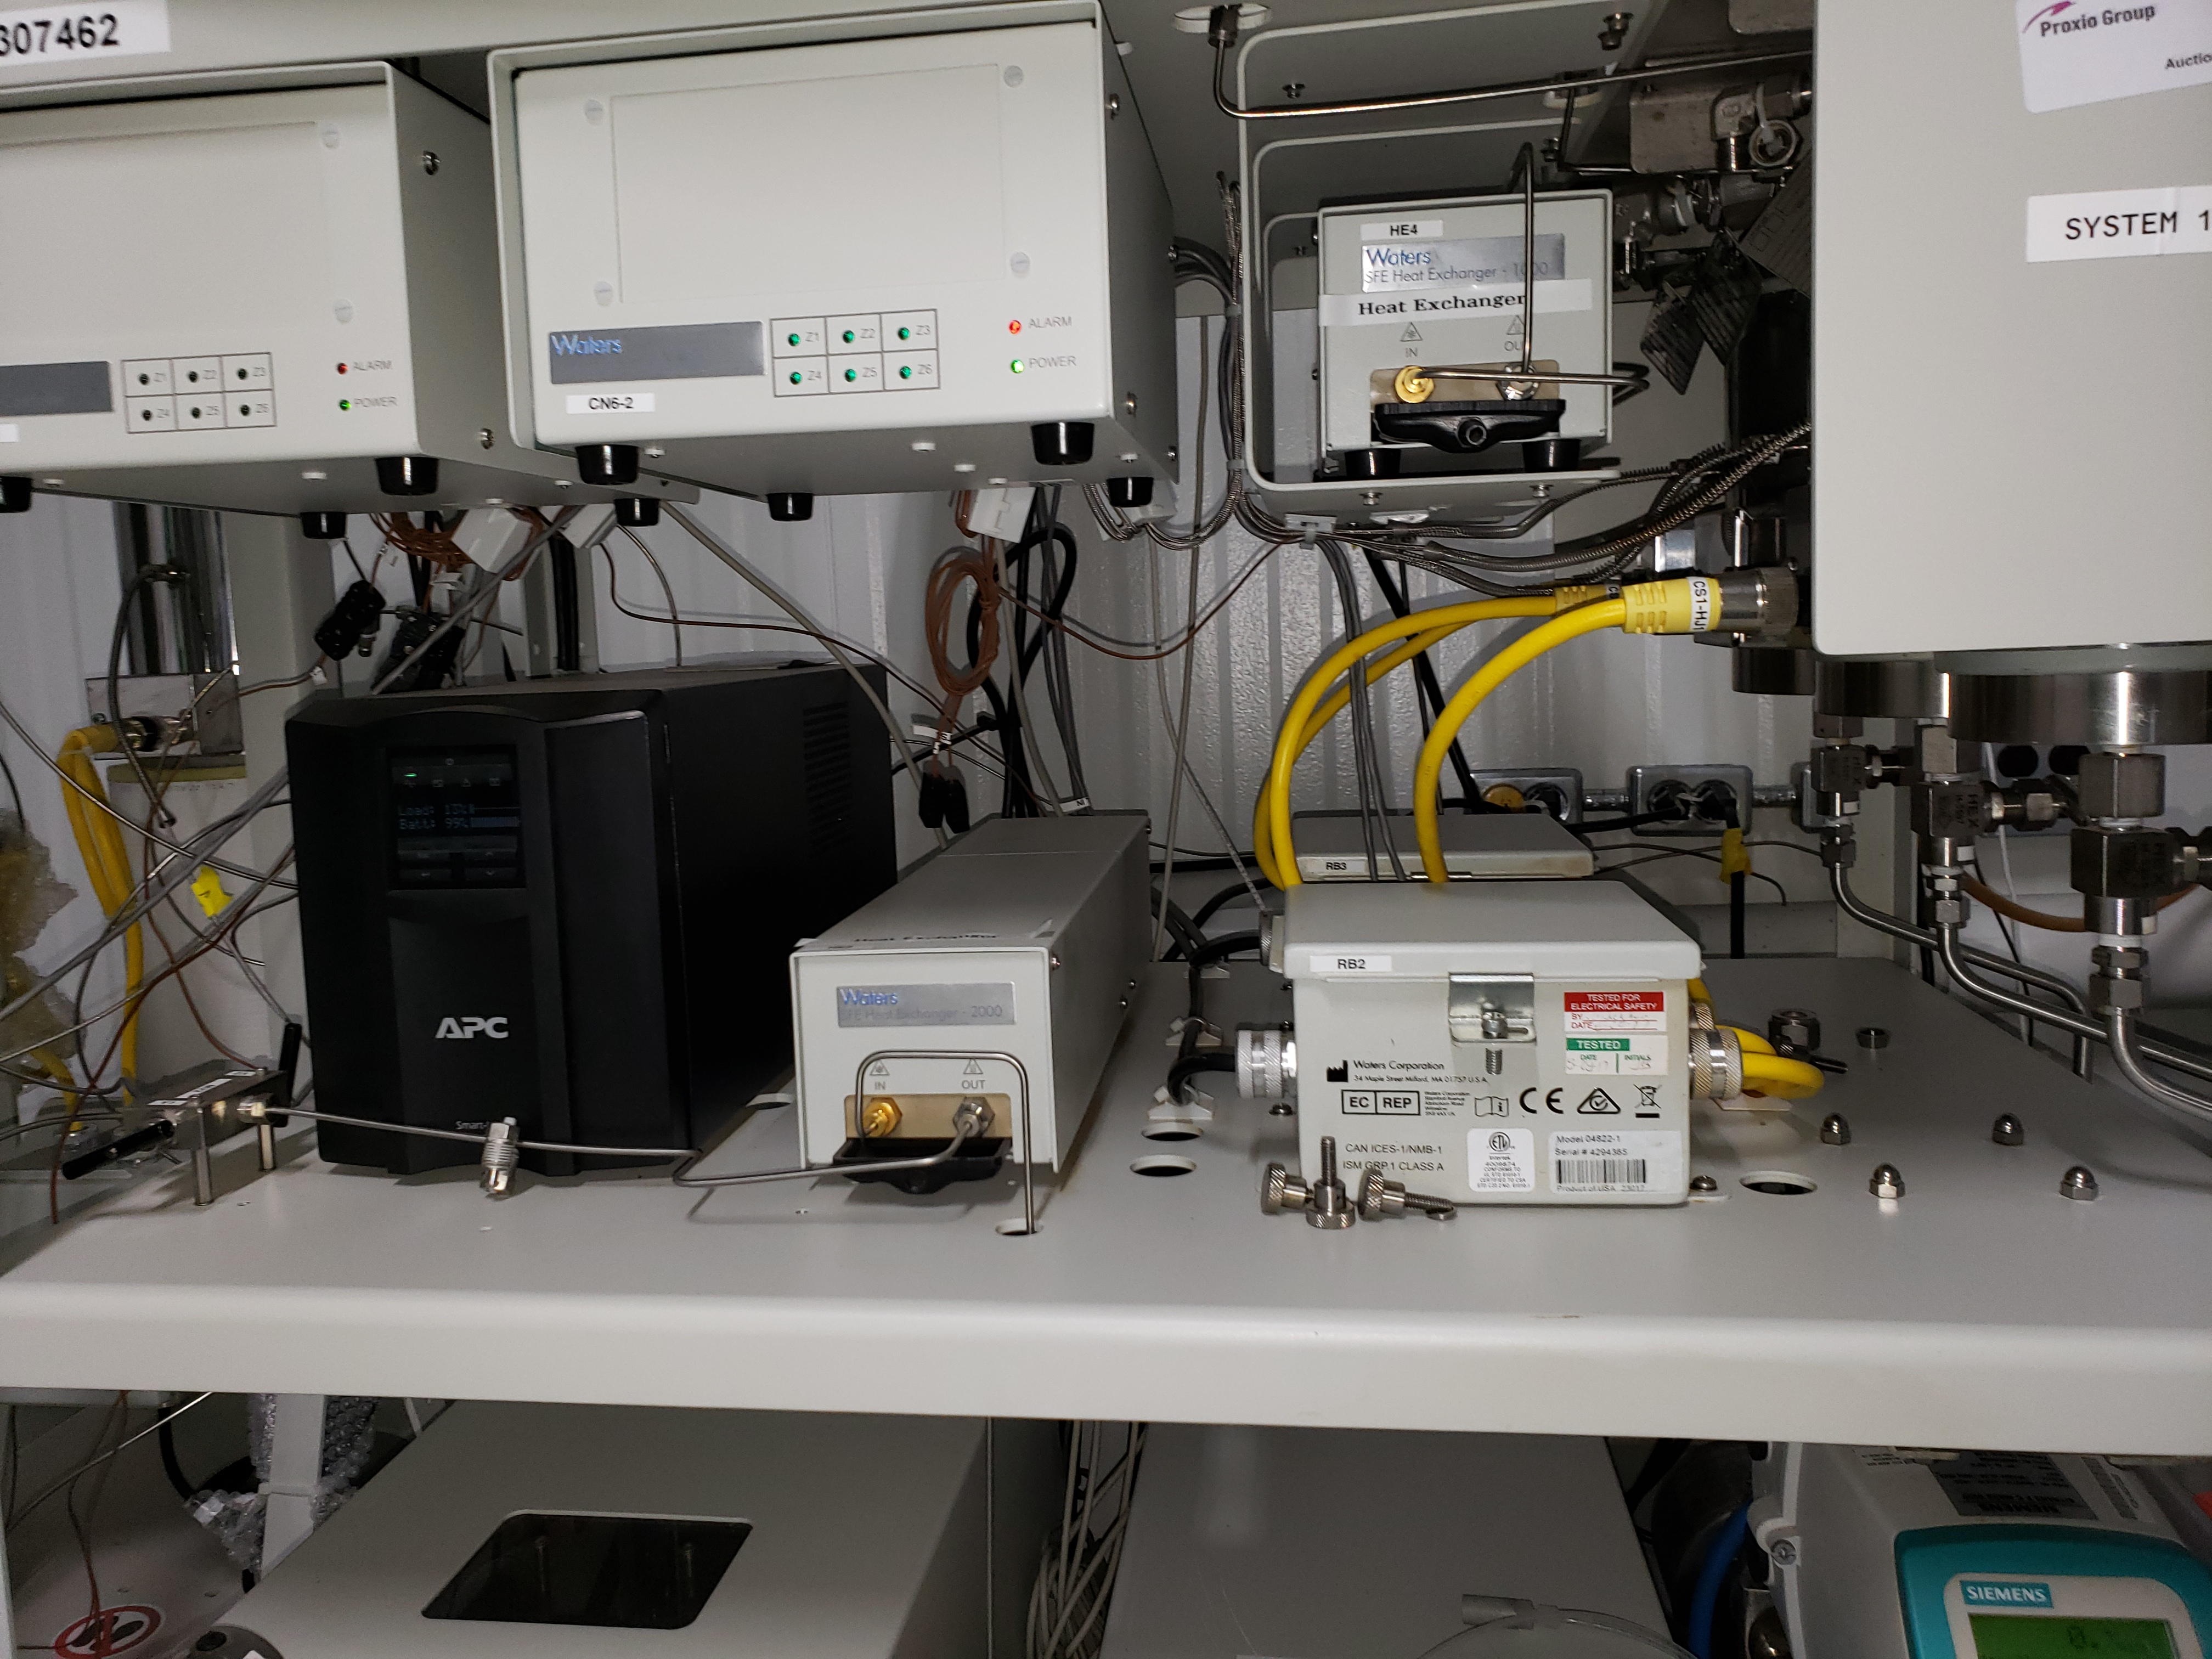 Waters SFE CO2 Botanical Extraction System - Image 10 of 18